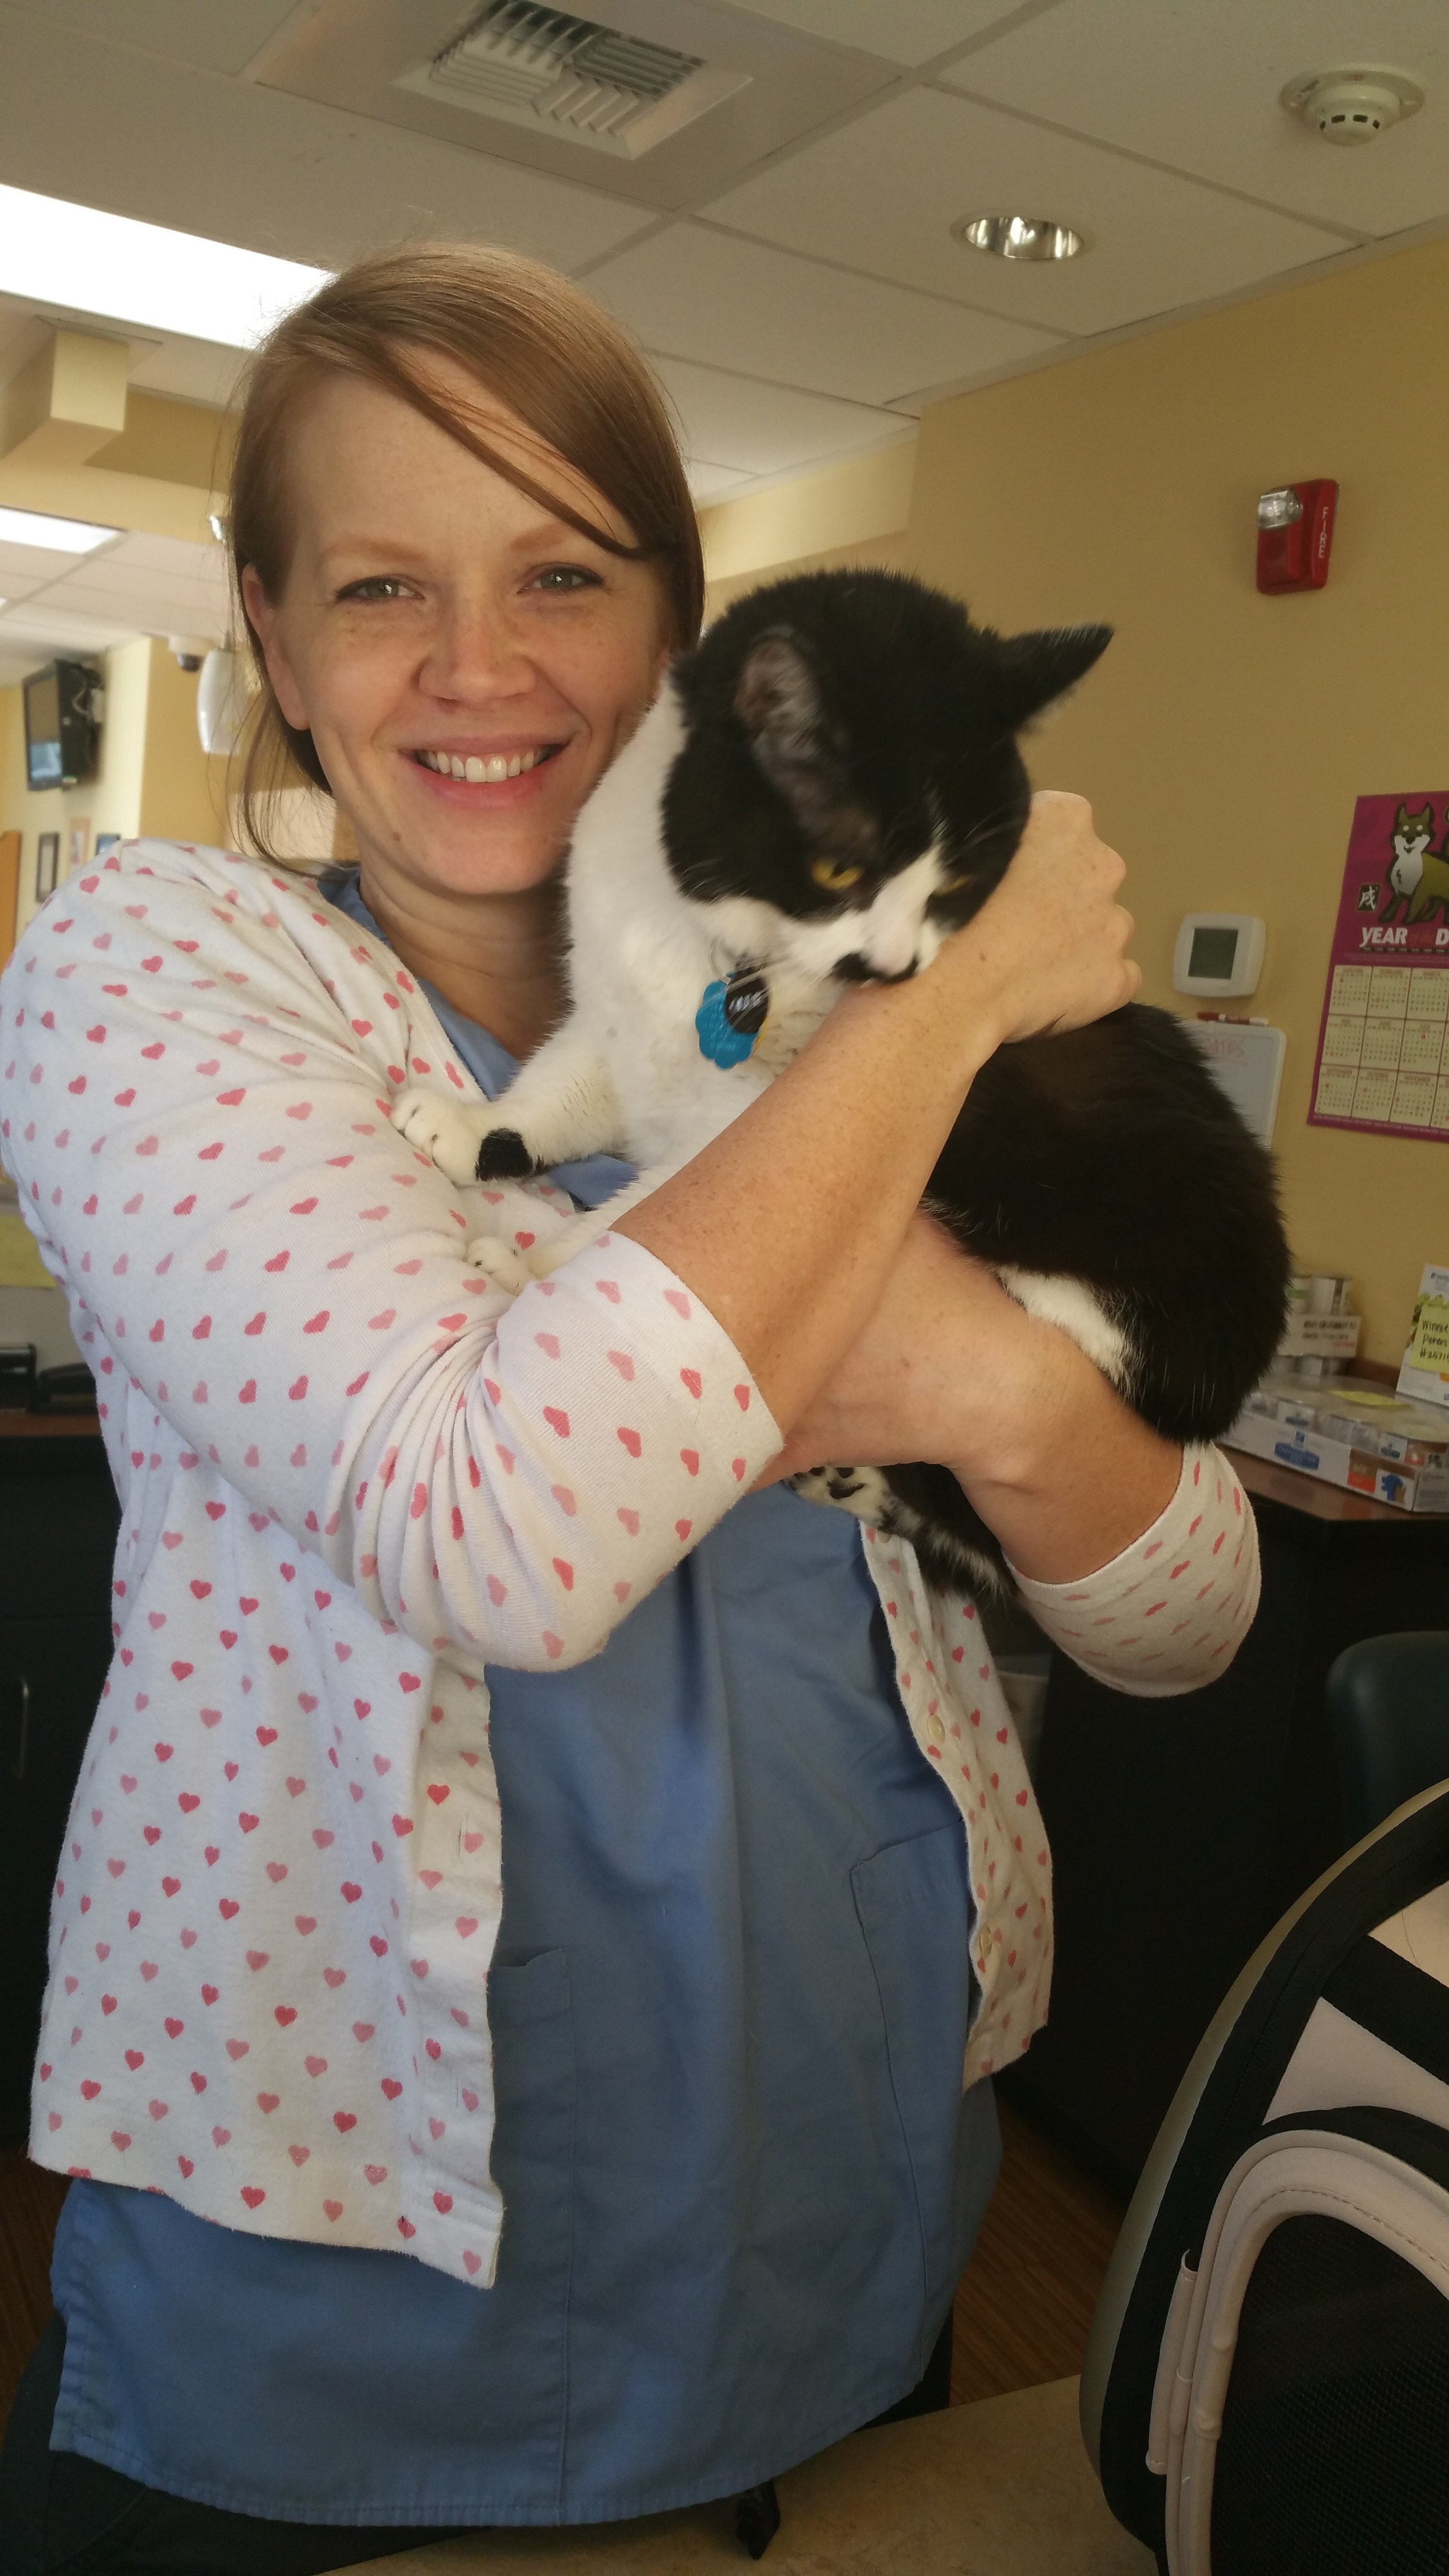 Kacee, one of the fantastic American Dental Care technicians, is highly skilled but also gentle with your dog and cat.